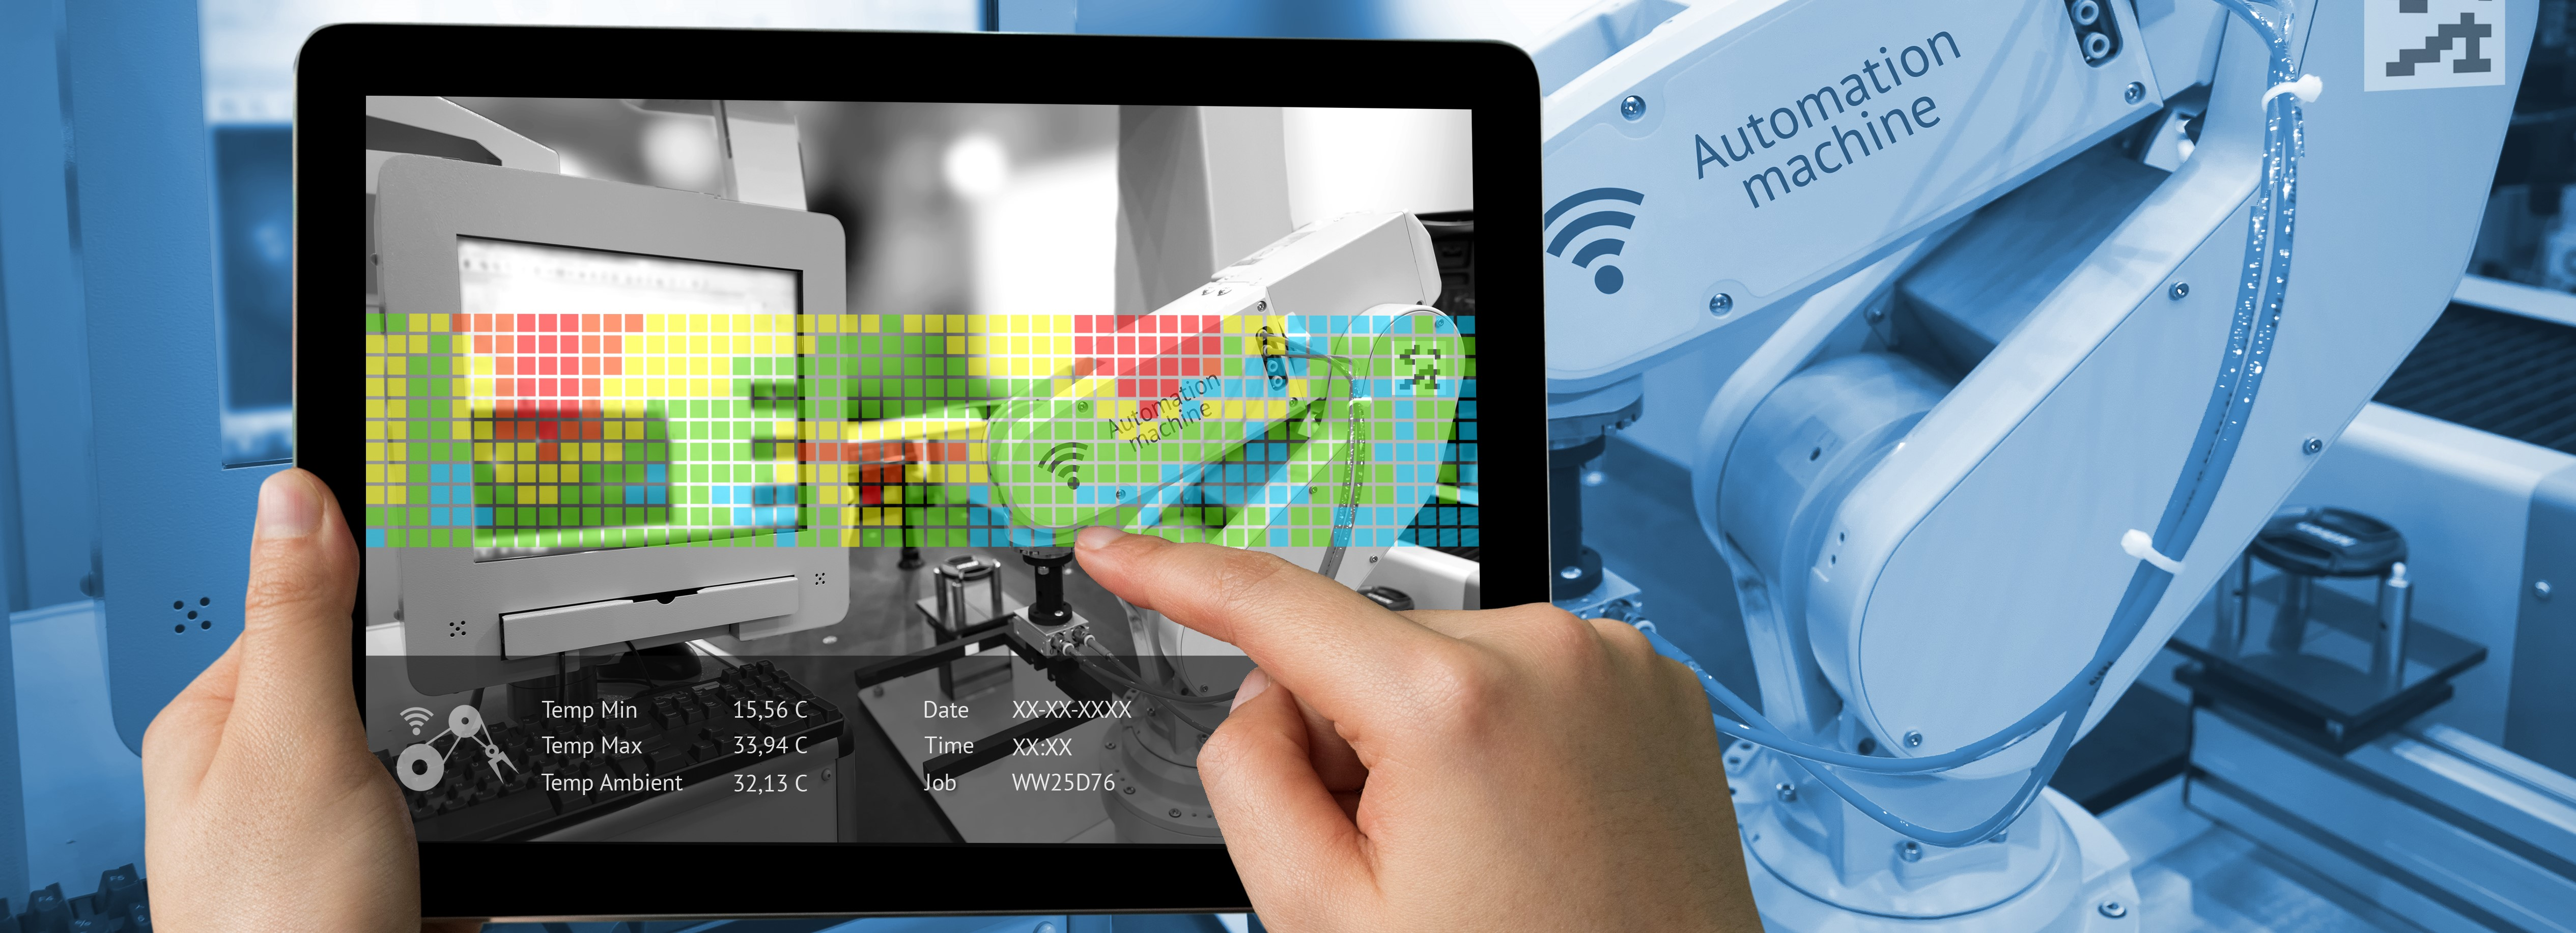 Augmented reality on tablet showing robot in a smart factory